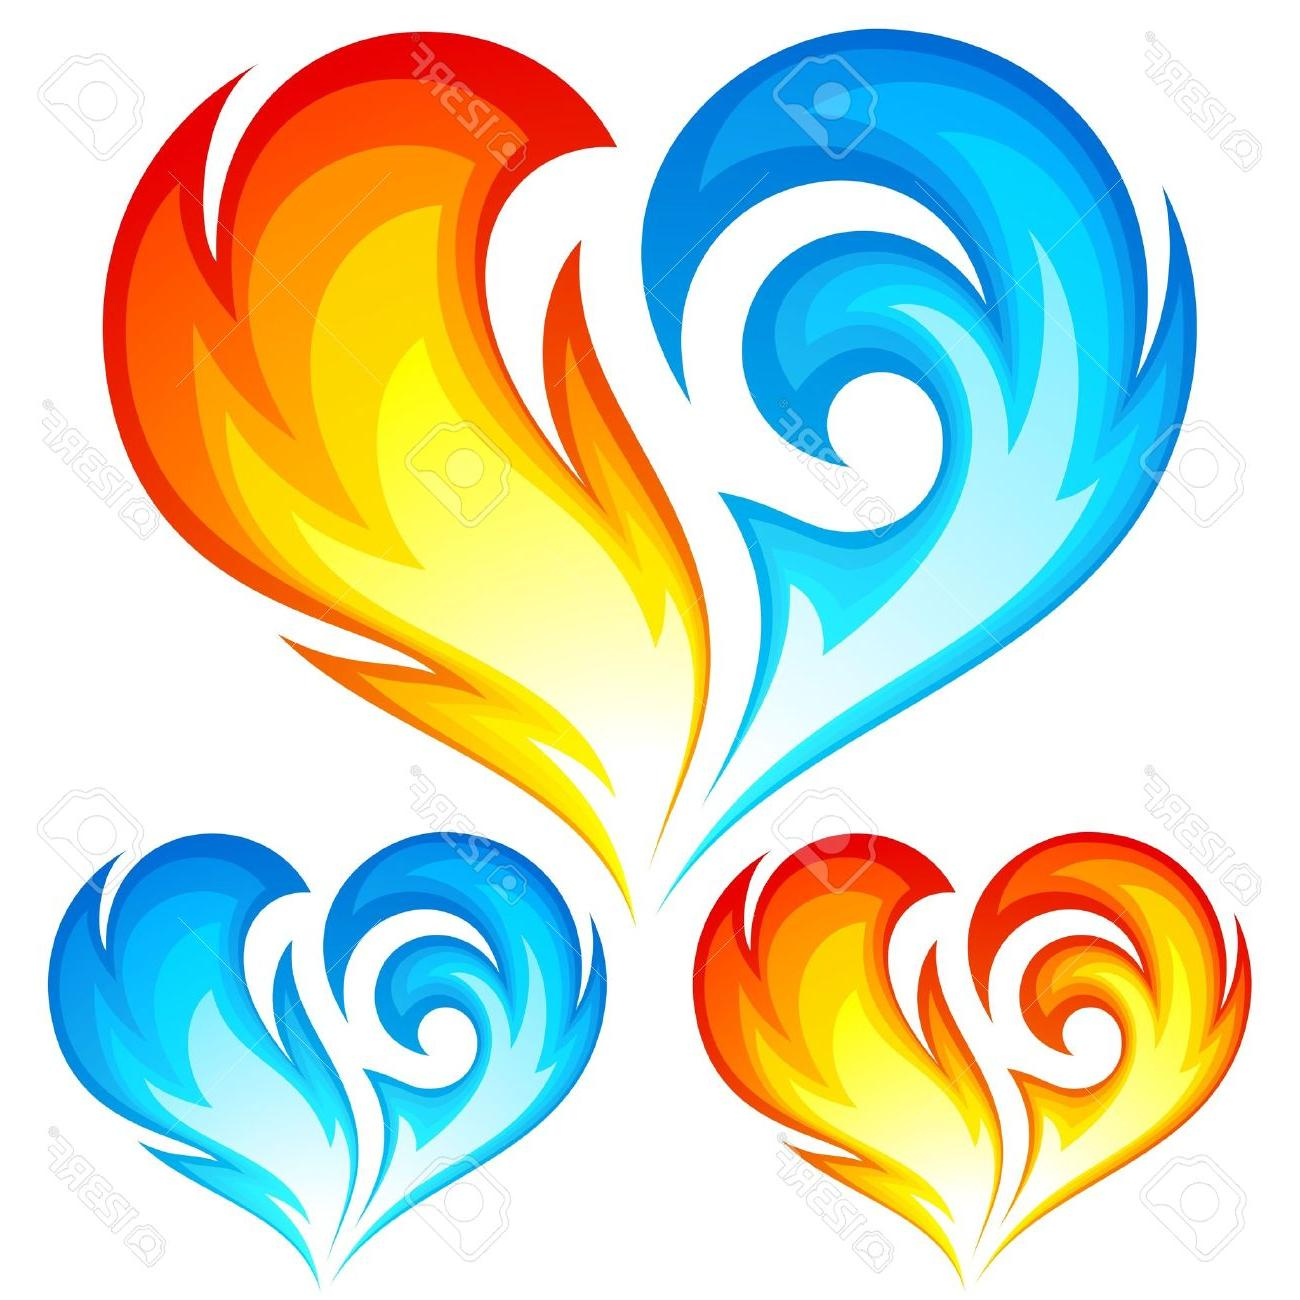 Heart On Fire Clipart | Free download on ClipArtMag